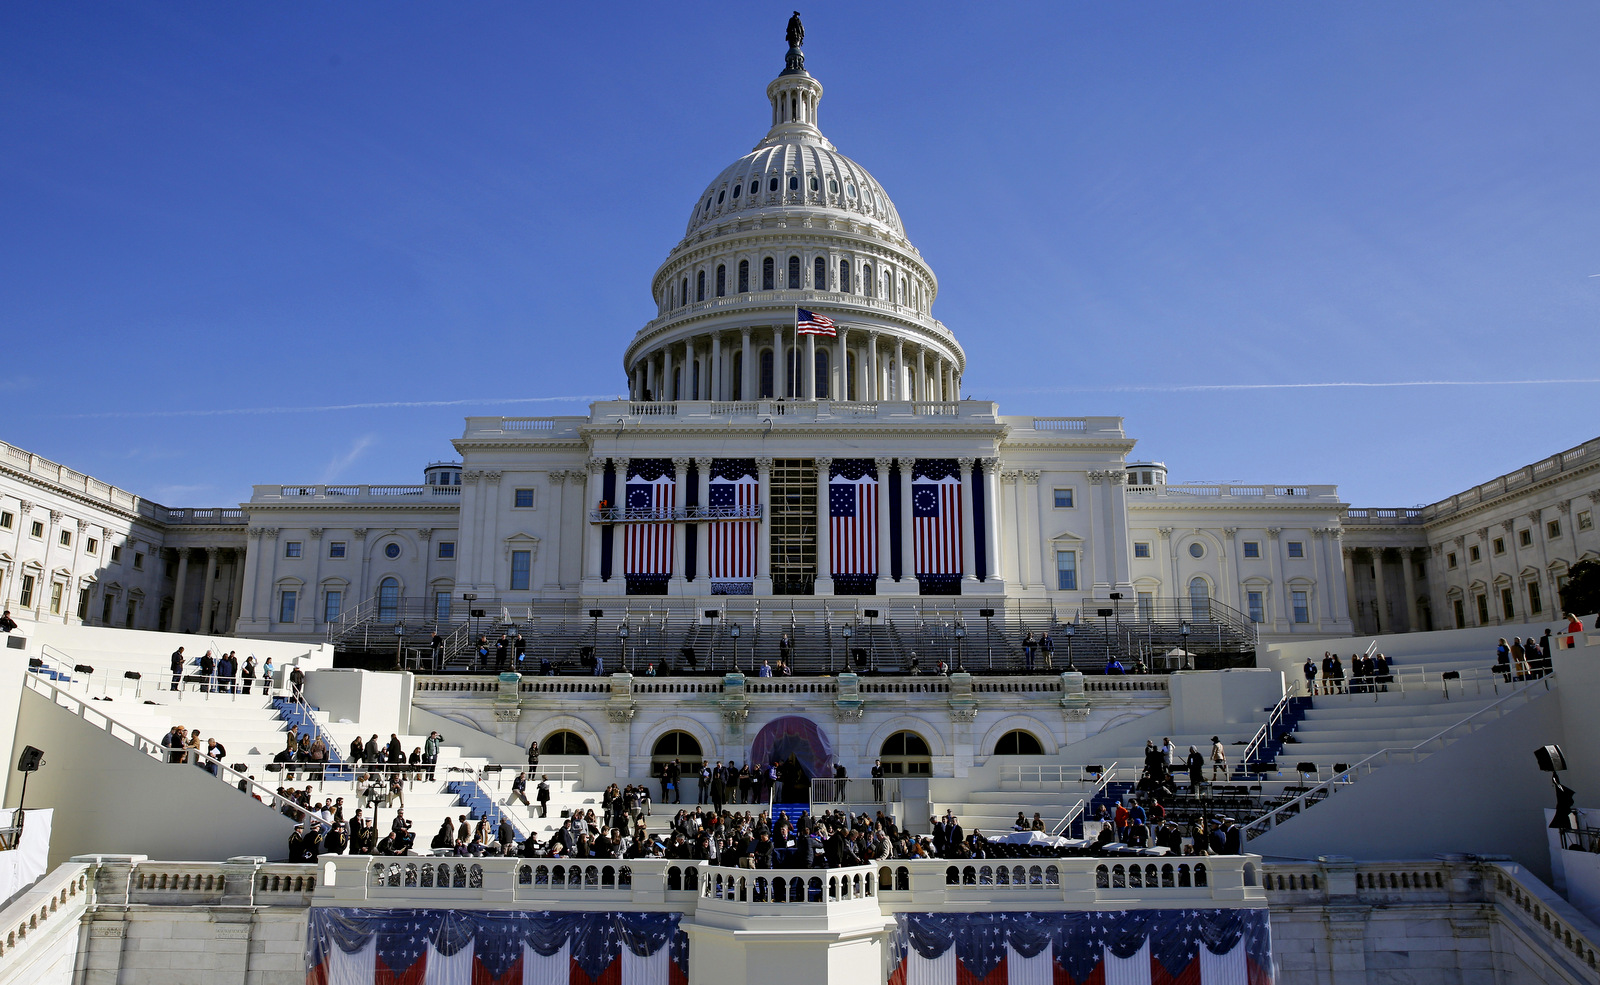 The U.S. Capitol looms over a stage during a rehearsal of President-elect Donald Trump's swearing-in ceremony, Sunday, Jan. 15, 2017, in Washington. (AP/Patrick Semansky)